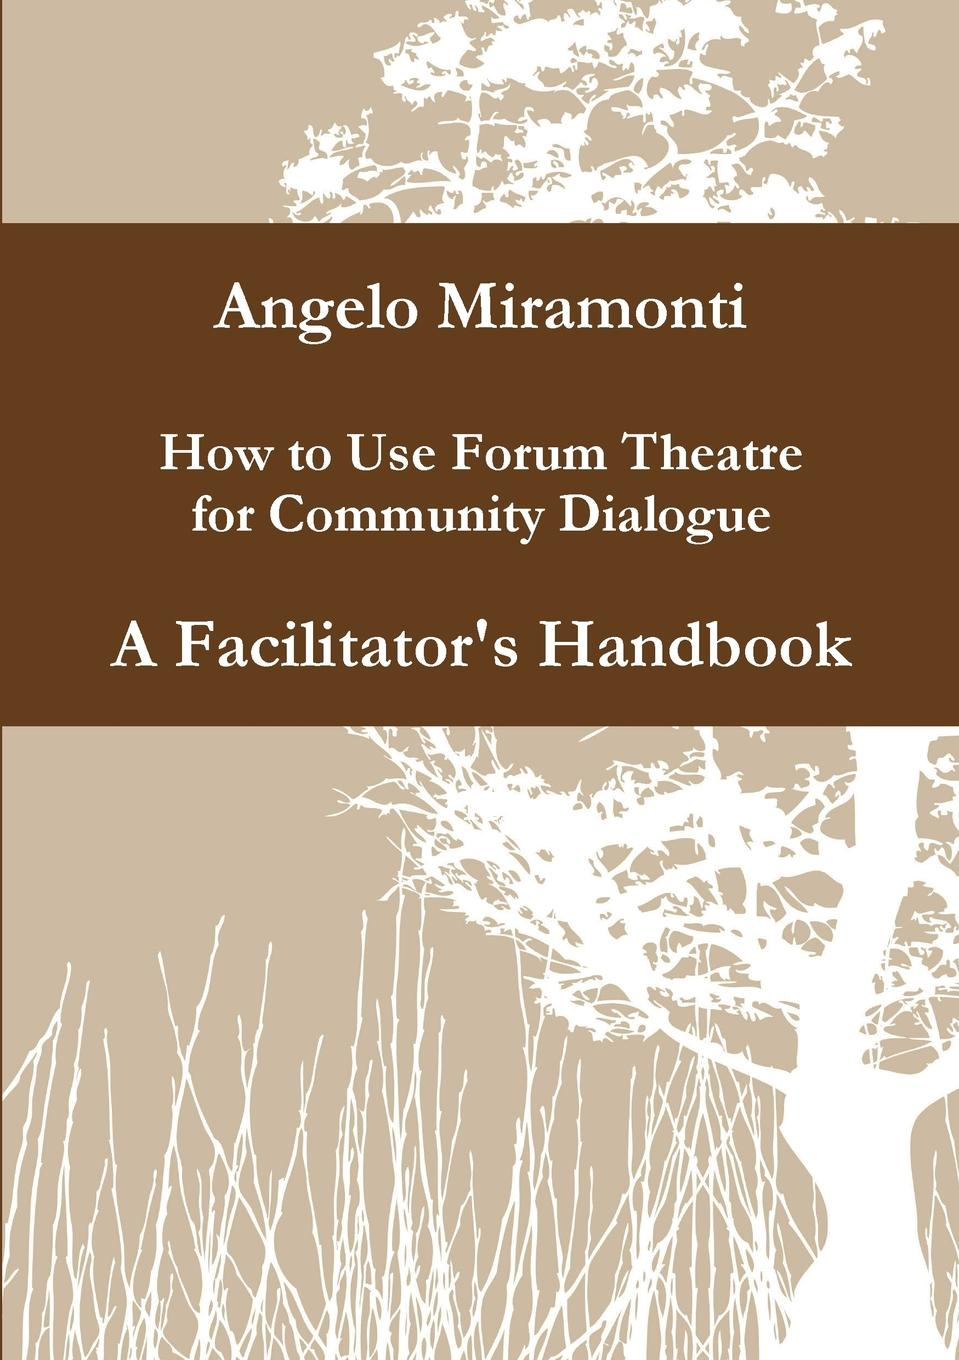 Angelo Miramonti How to use Forum Theatre for Community Dialogue - A Facilitator.s Handbook suzanne morse w smart communities how citizens and local leaders can use strategic thinking to build a brighter future